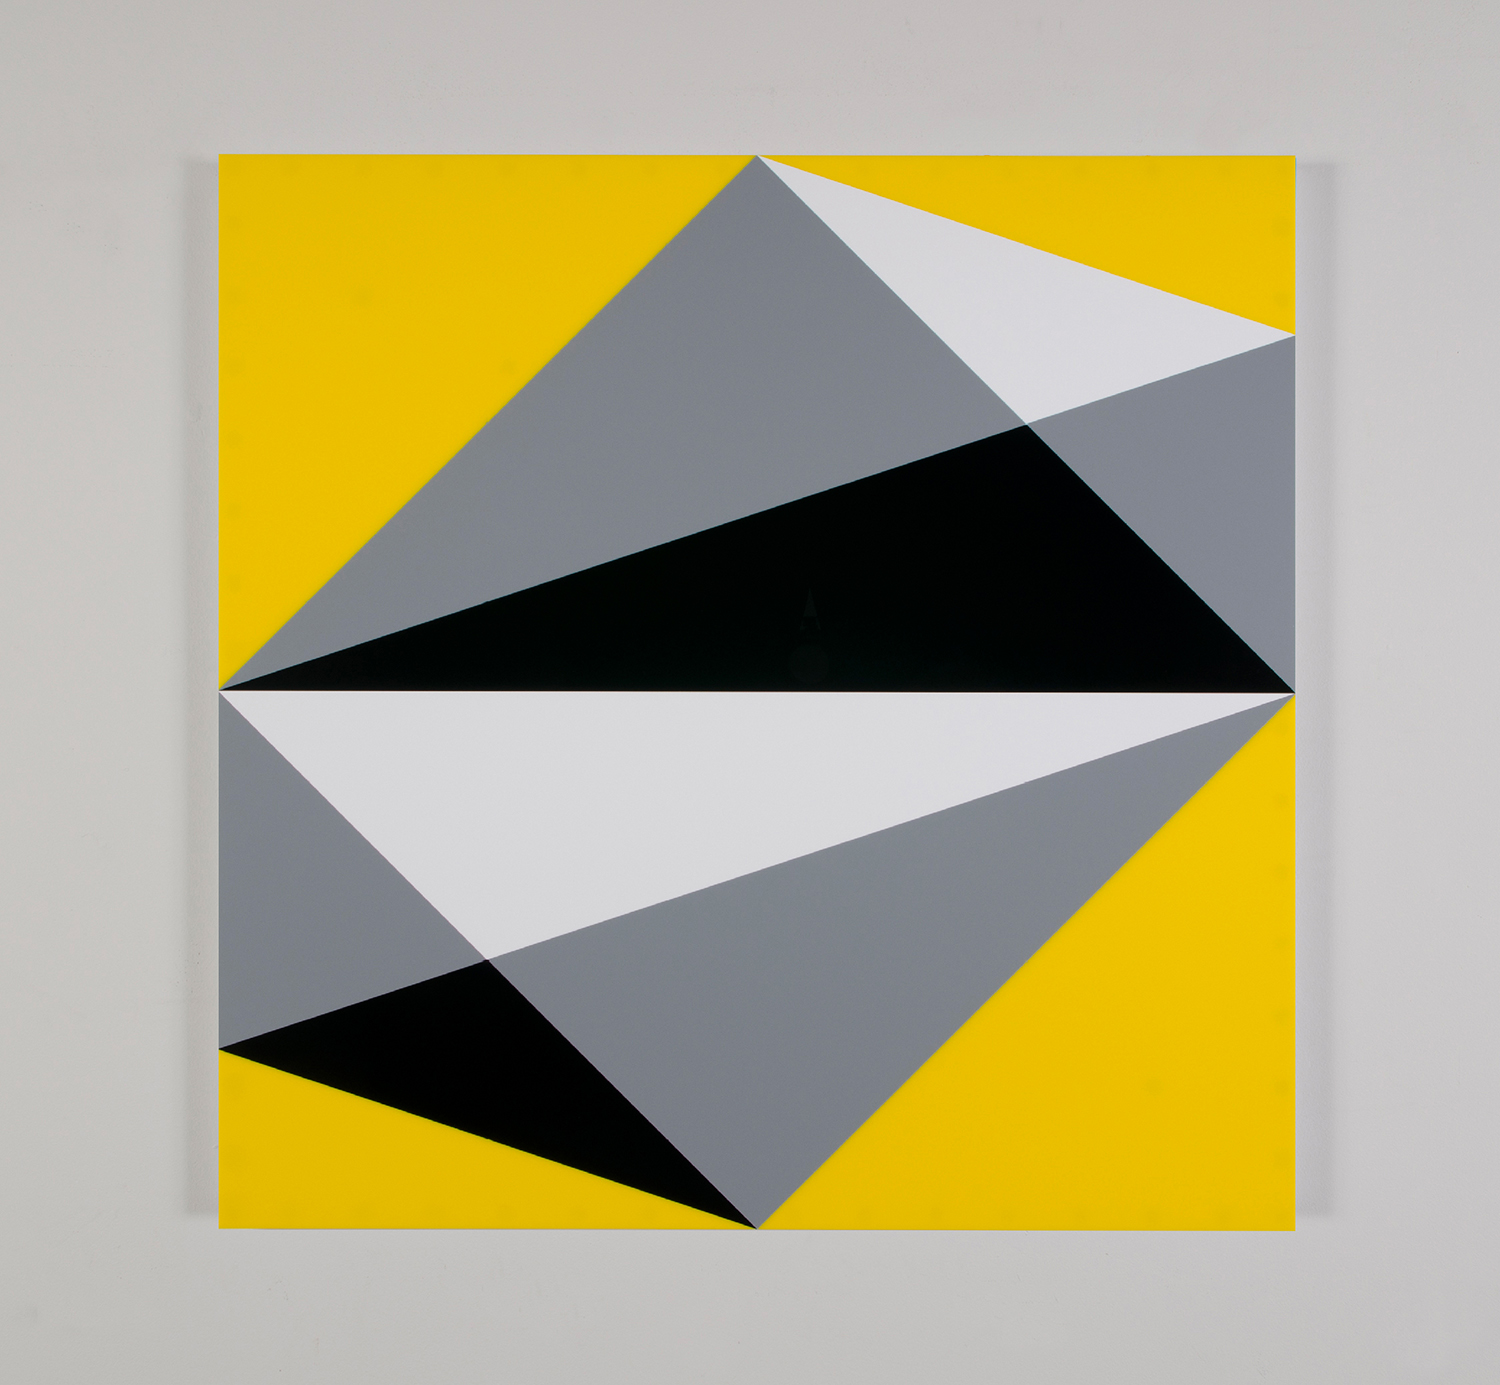 "Composition in 3015 White, 3001 Gray, 2025 Black and 2037 Yellow Colored Plexiglas mounted on panel 37.5"" x 37.5"" 2015"